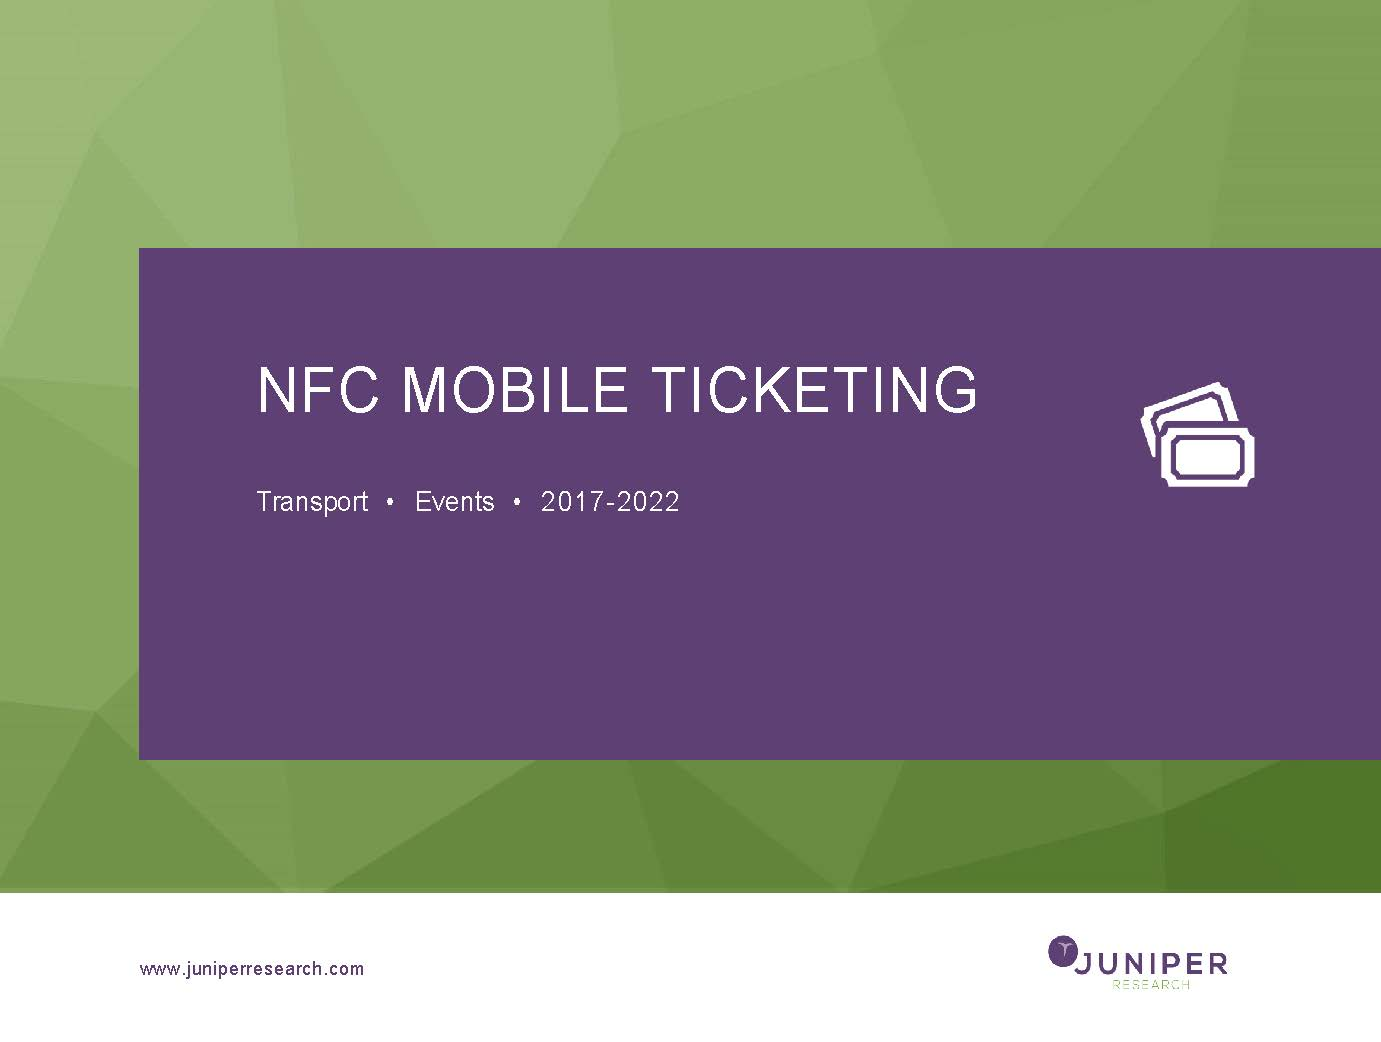 NFC Mobile Ticketing 2017-2022